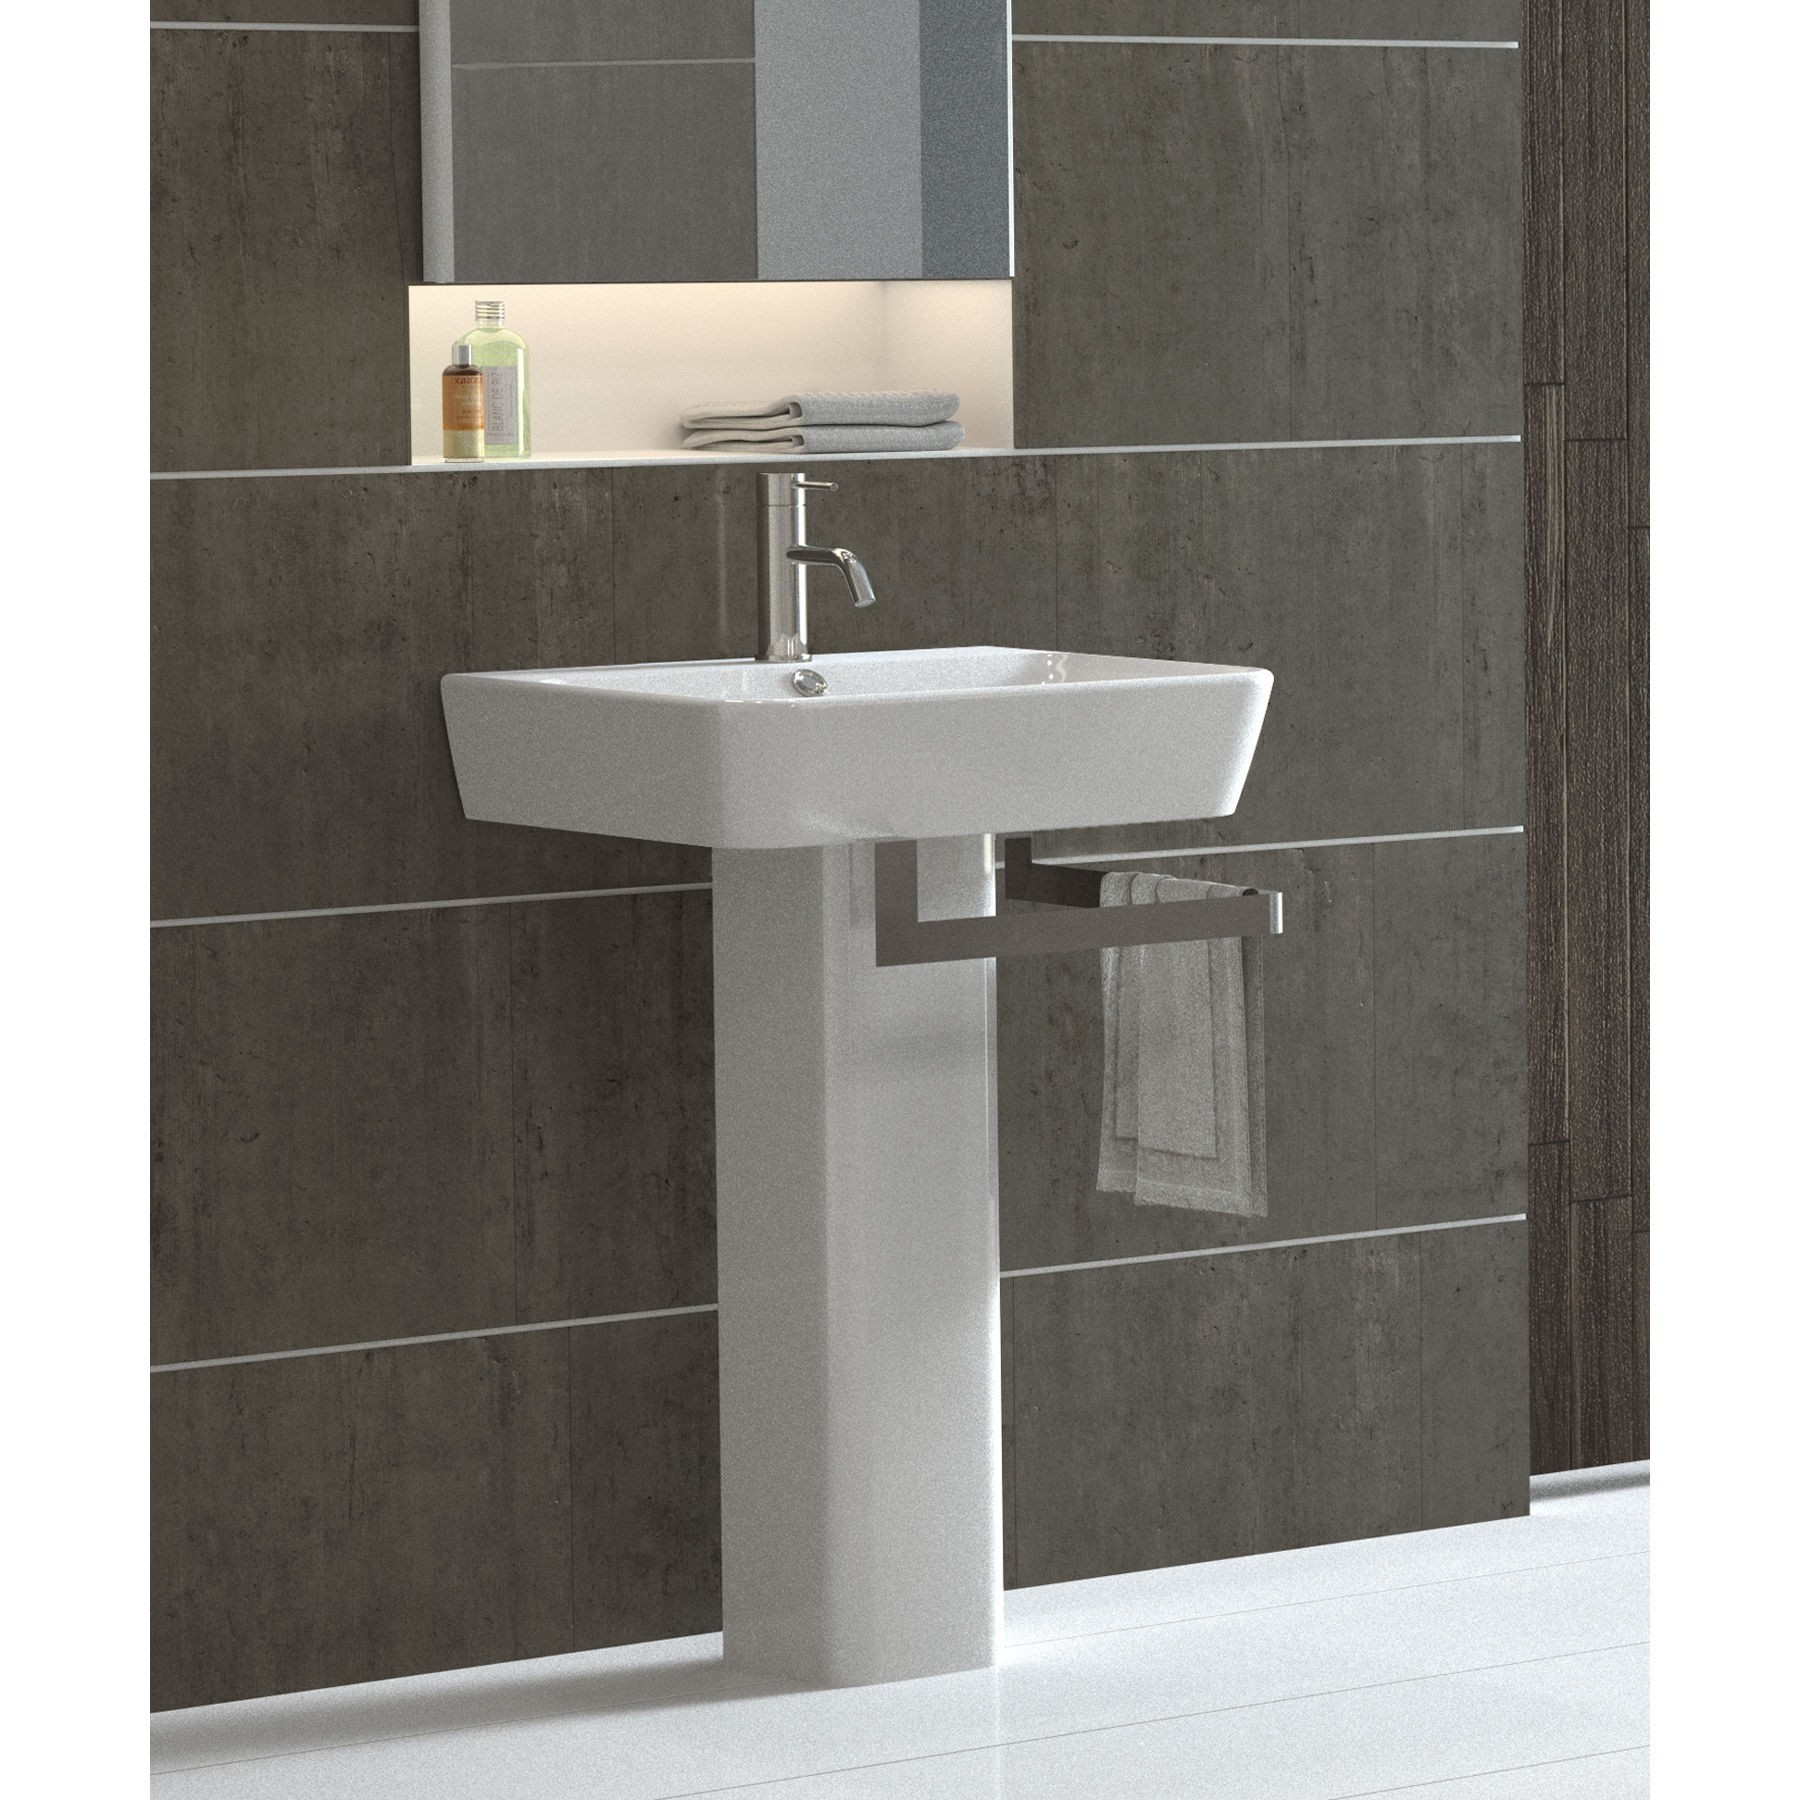 Modern Pedestal Sinks For Small Bathrooms 1